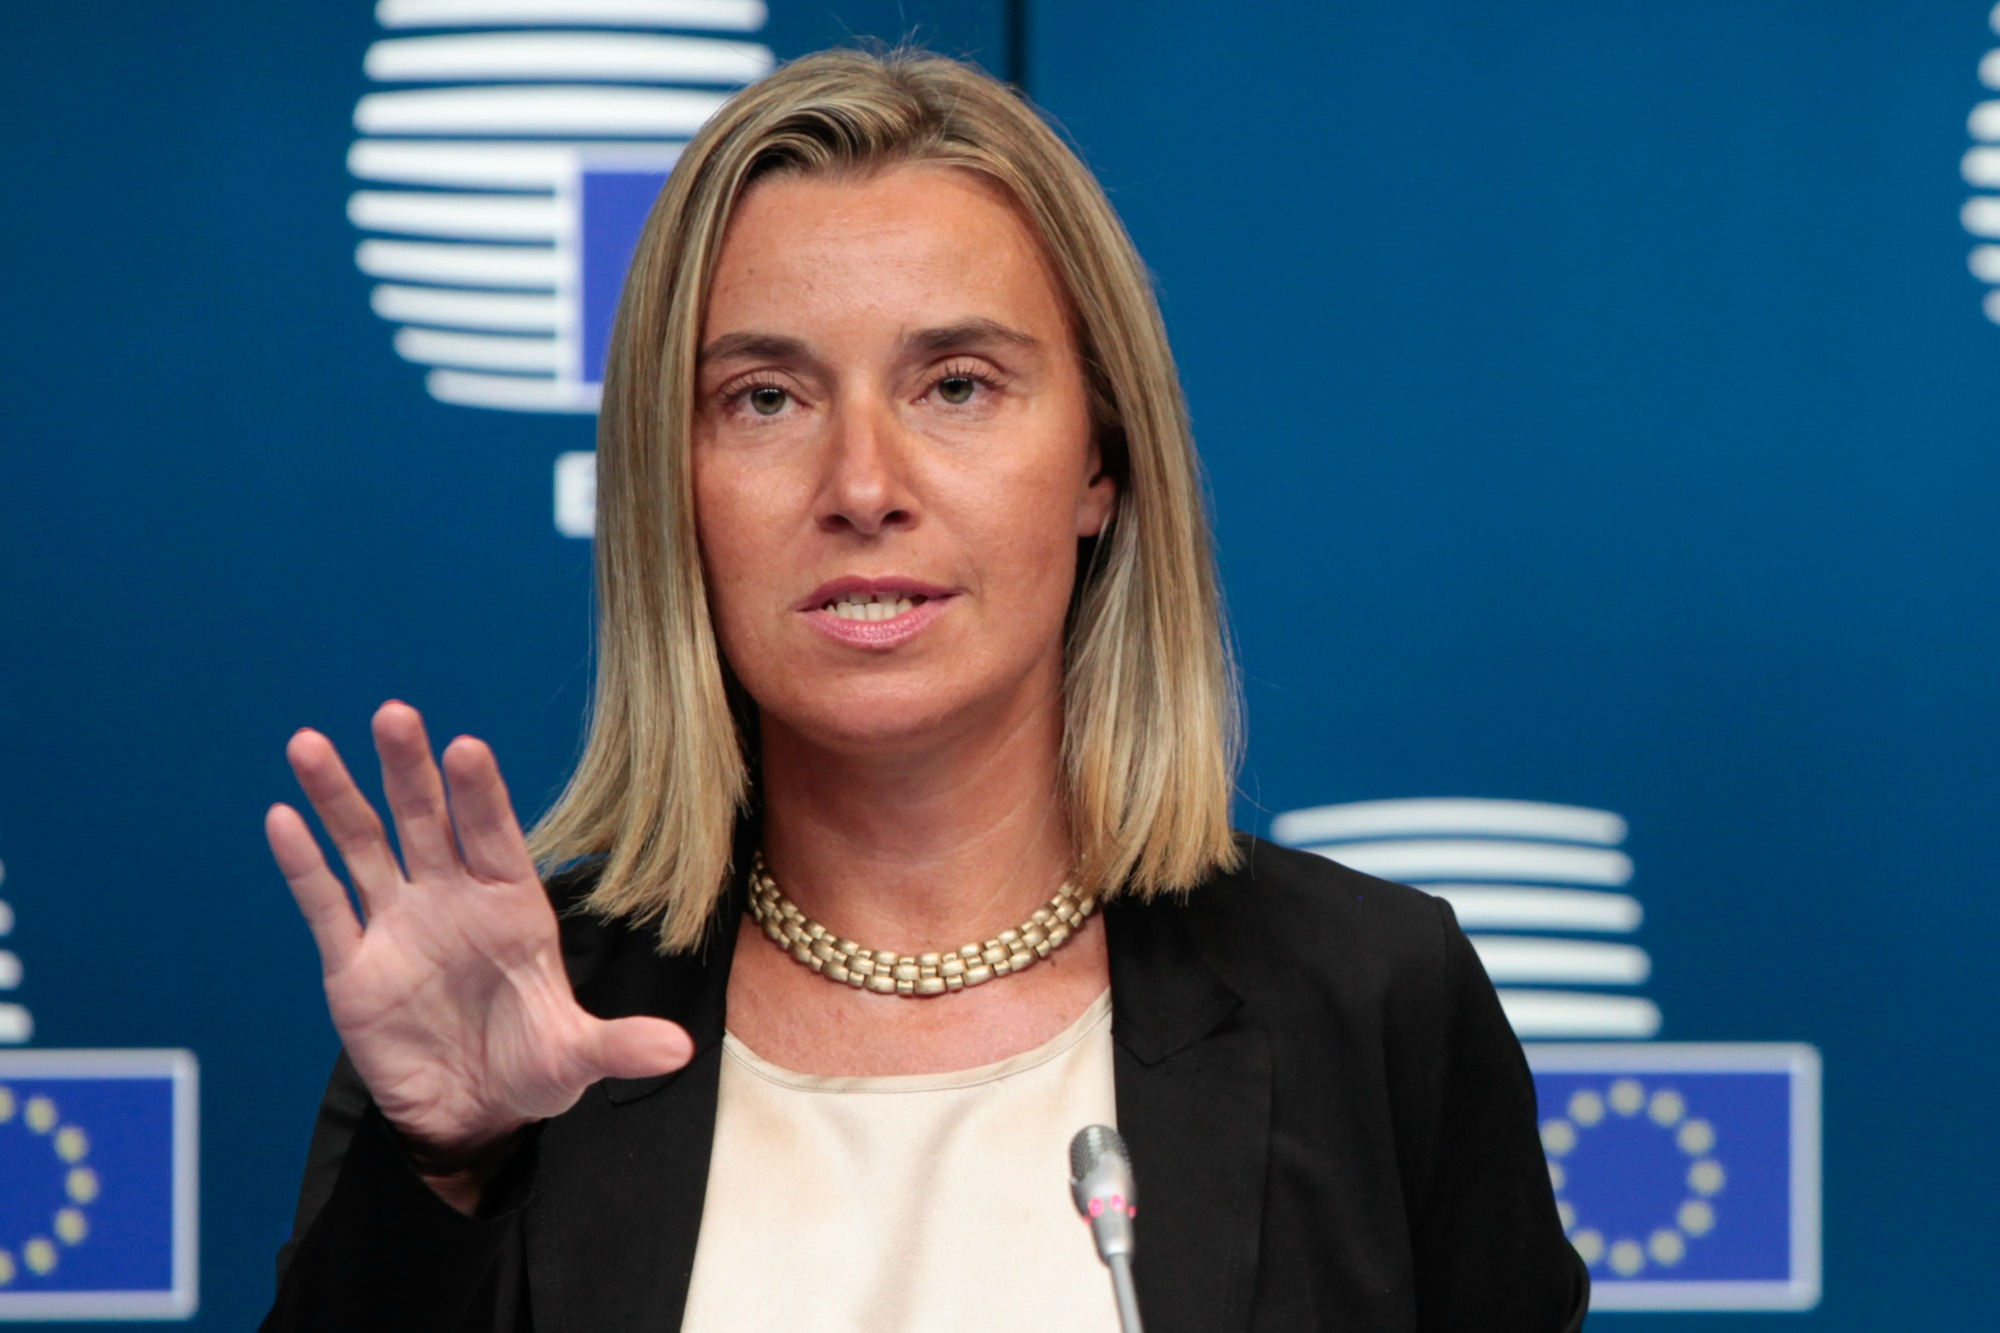 Mogherini: Deal between Pristina and Belgrade should have UN's backing